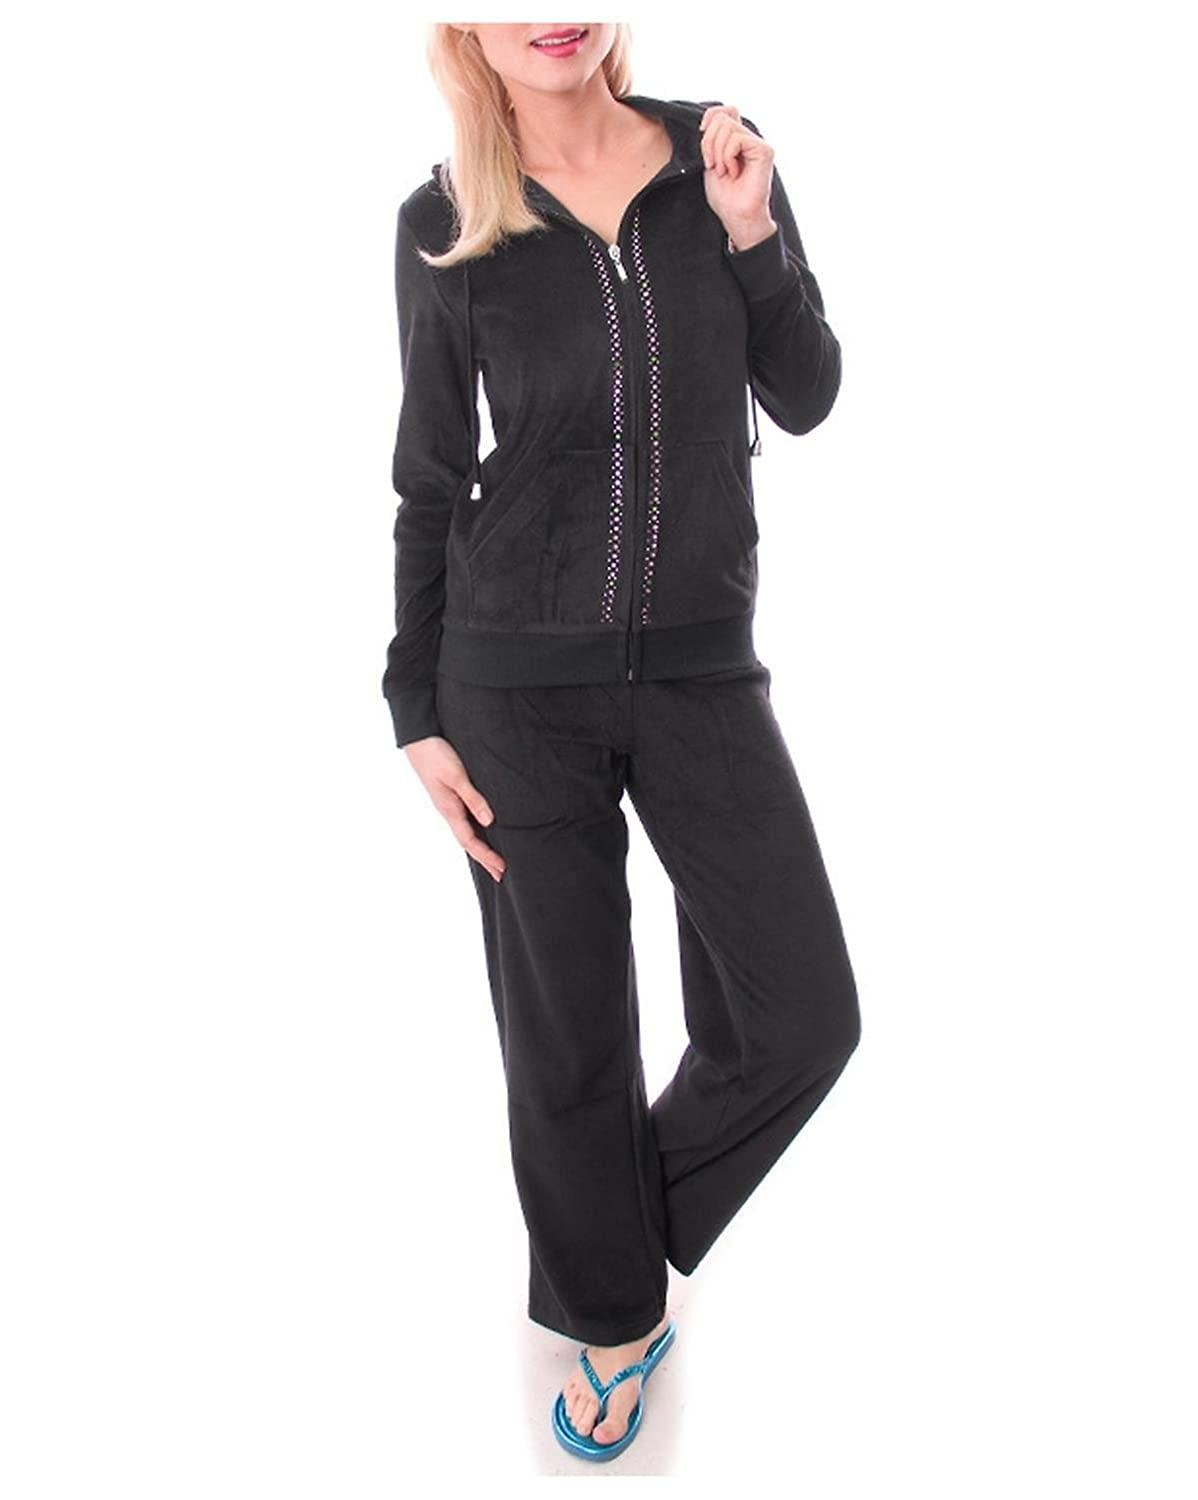 G2 Chic Women's Two Piece Velour Tracksuit with Embellishment BLKA1-M)